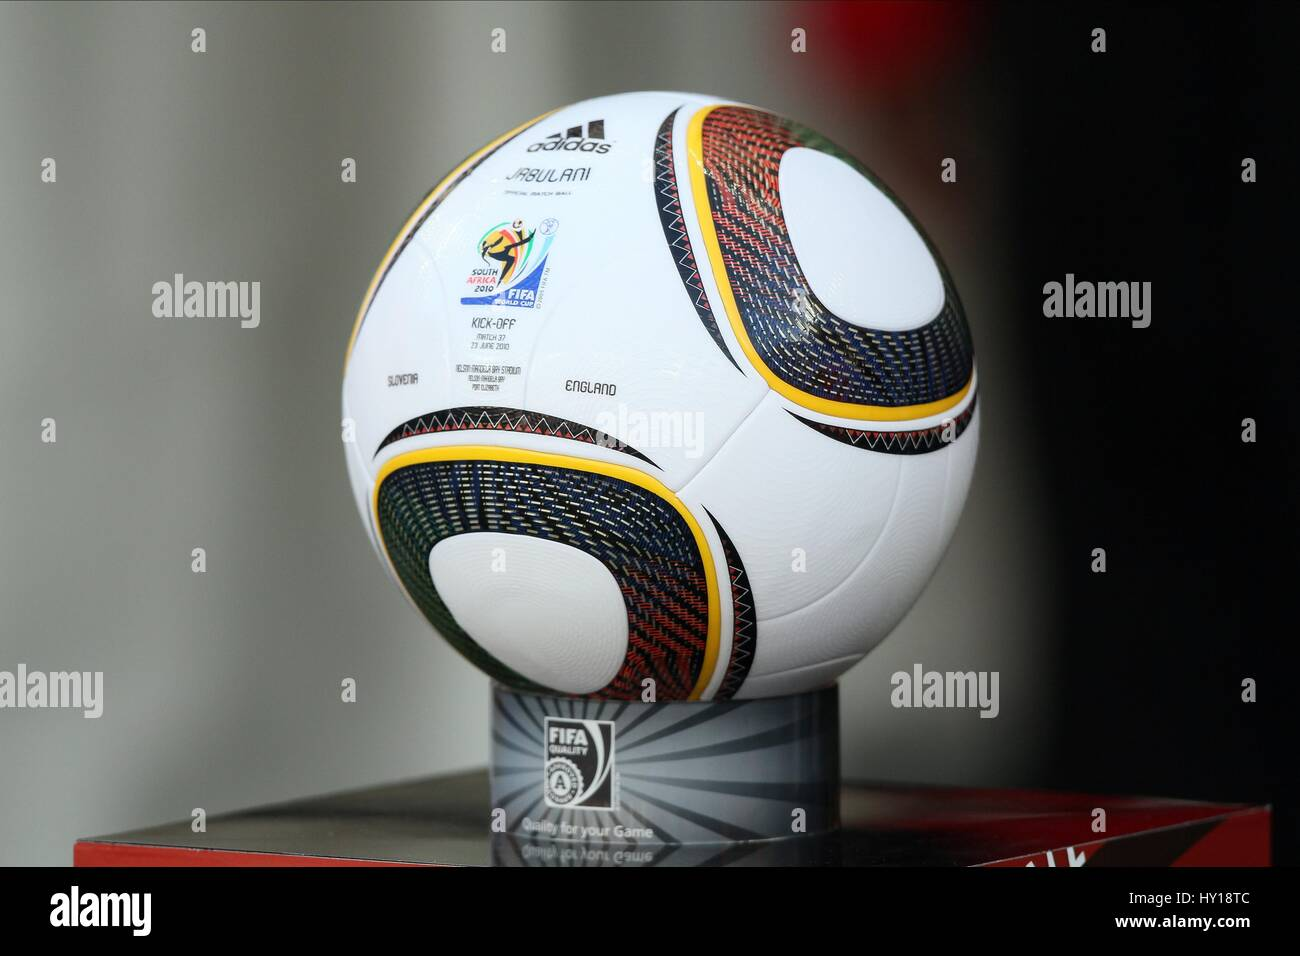 JABULANI OFFICIAL MATCH BALL SLOVENIA V ENGLAND SLOVENIA V ENGLAND NELSON MANDELA BAY PORT ELIZABETH SOUTH AFRICA - Stock Image